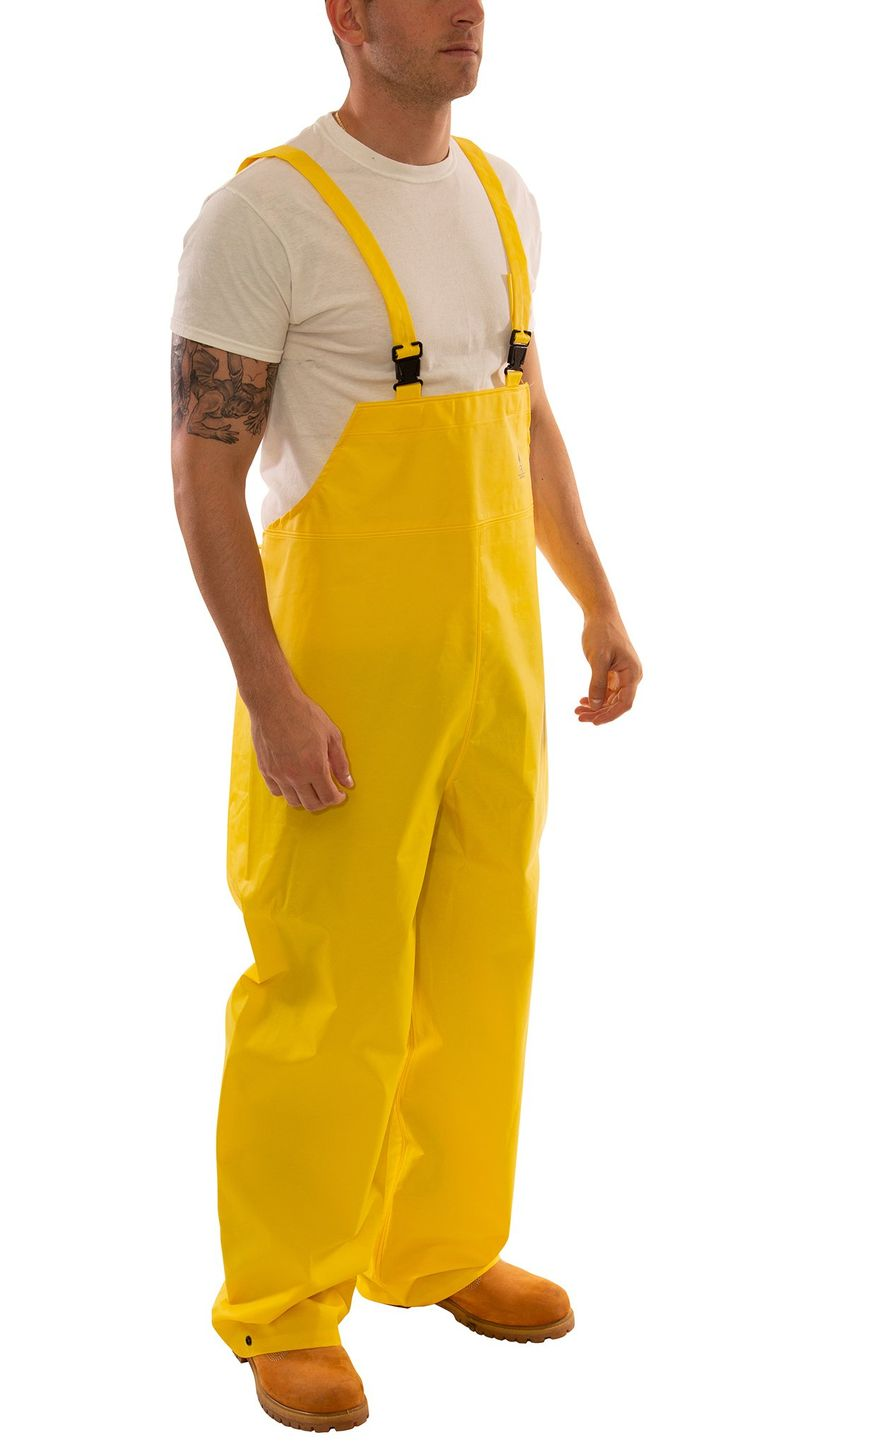 tingley-o56007-durascrim-fire-resistant-overalls-pvc-coated-chemical-resistant-with-plain-front-side.jpg